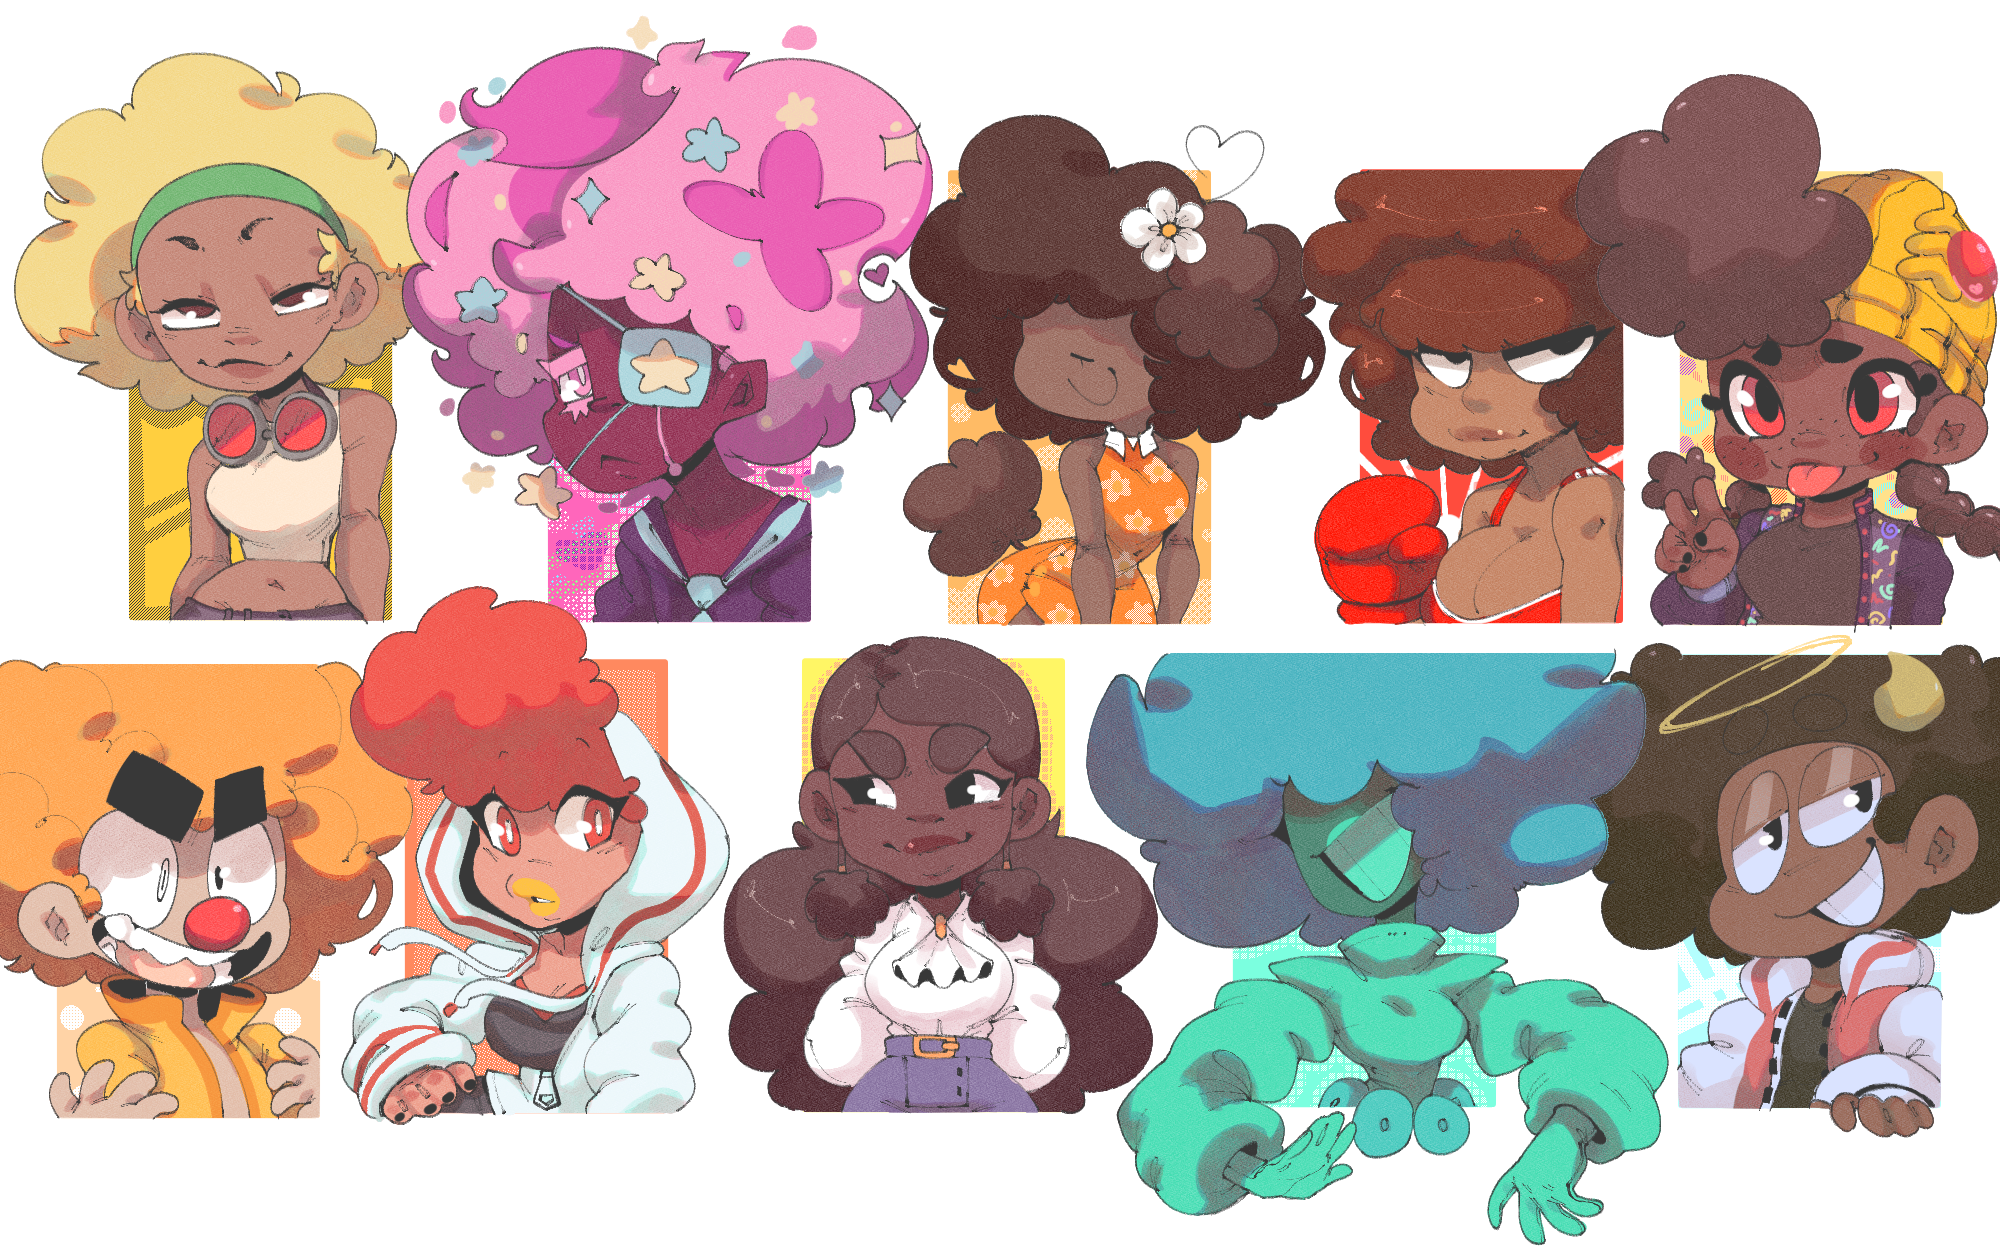 Fluffy Requests